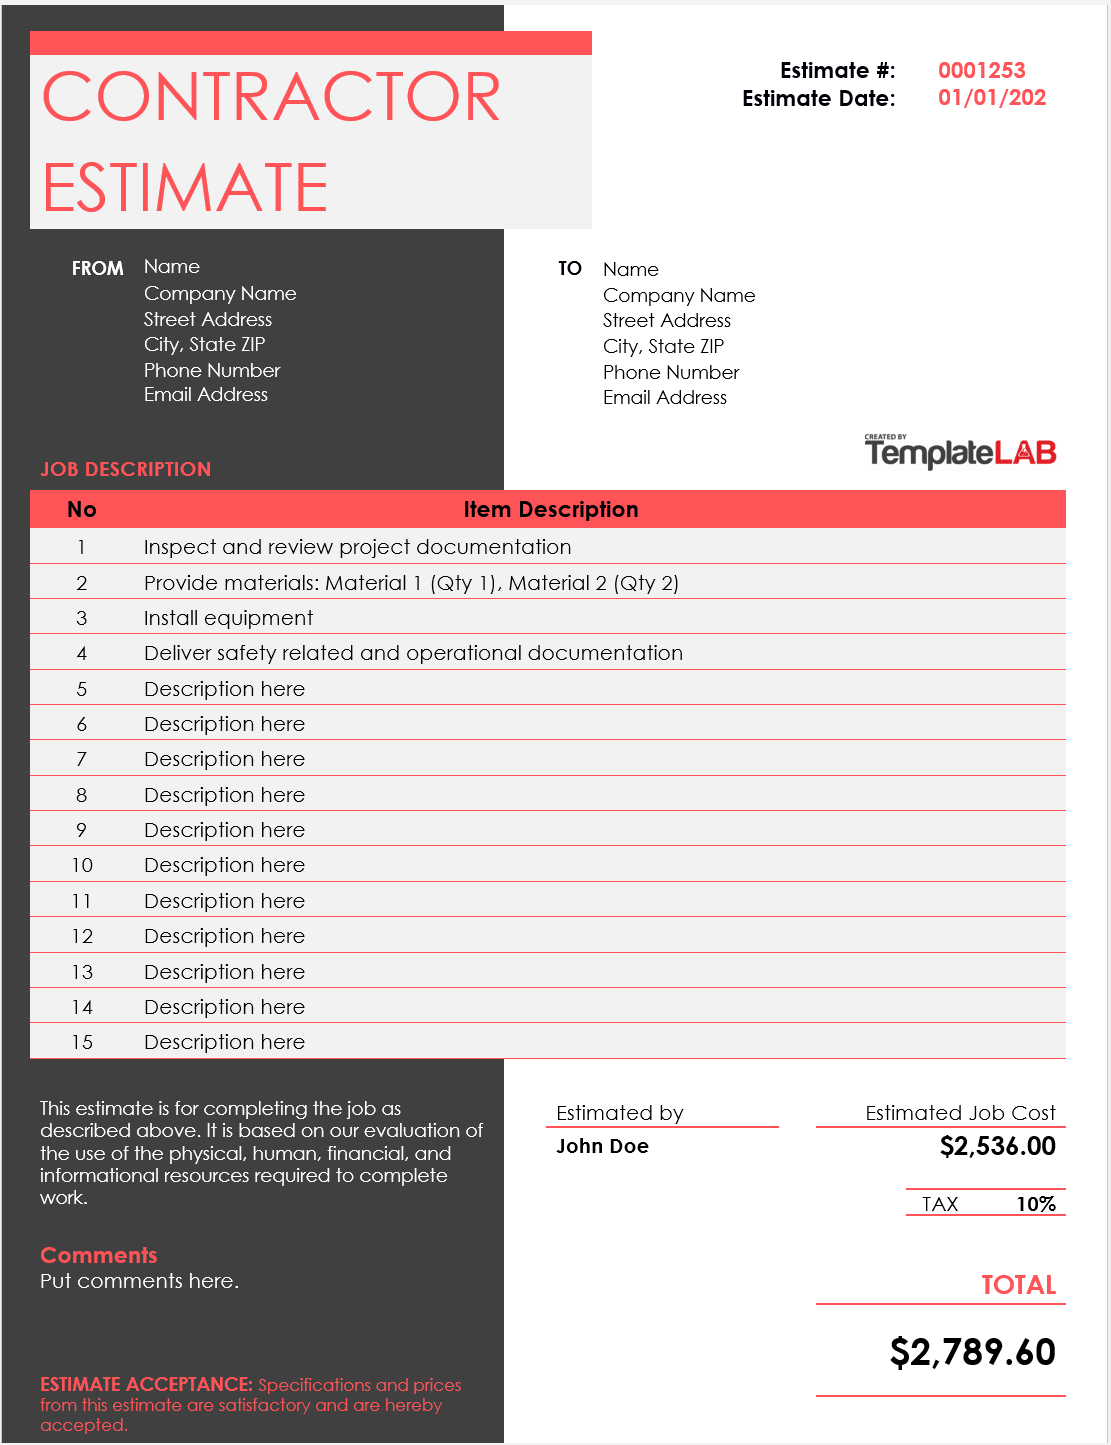 Free Contractor Estimate Template